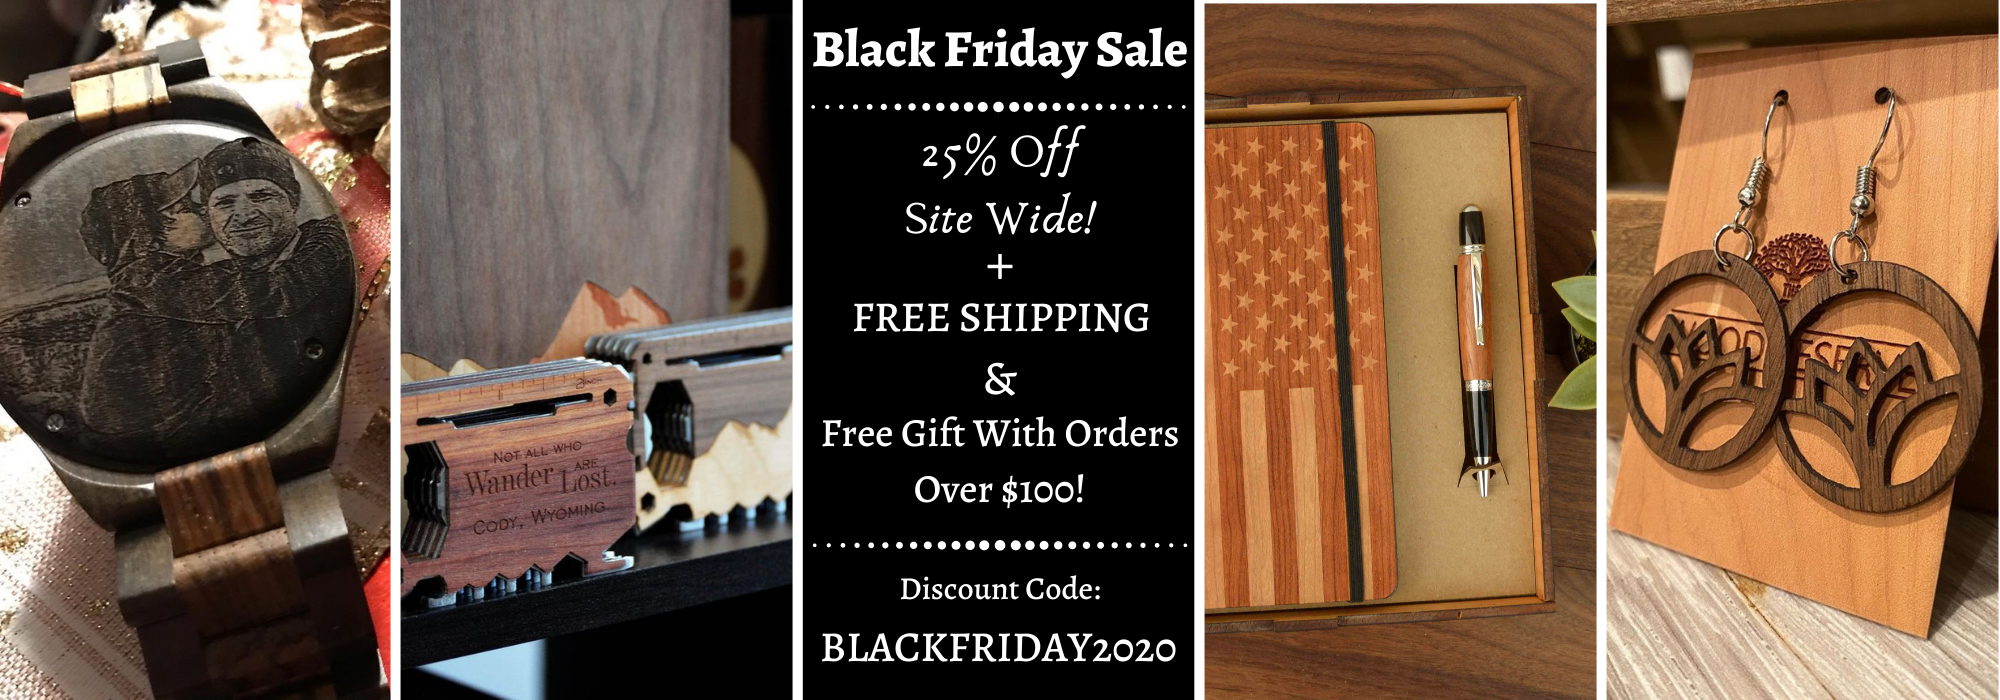 Black Friday Sale at The Wood Reserve